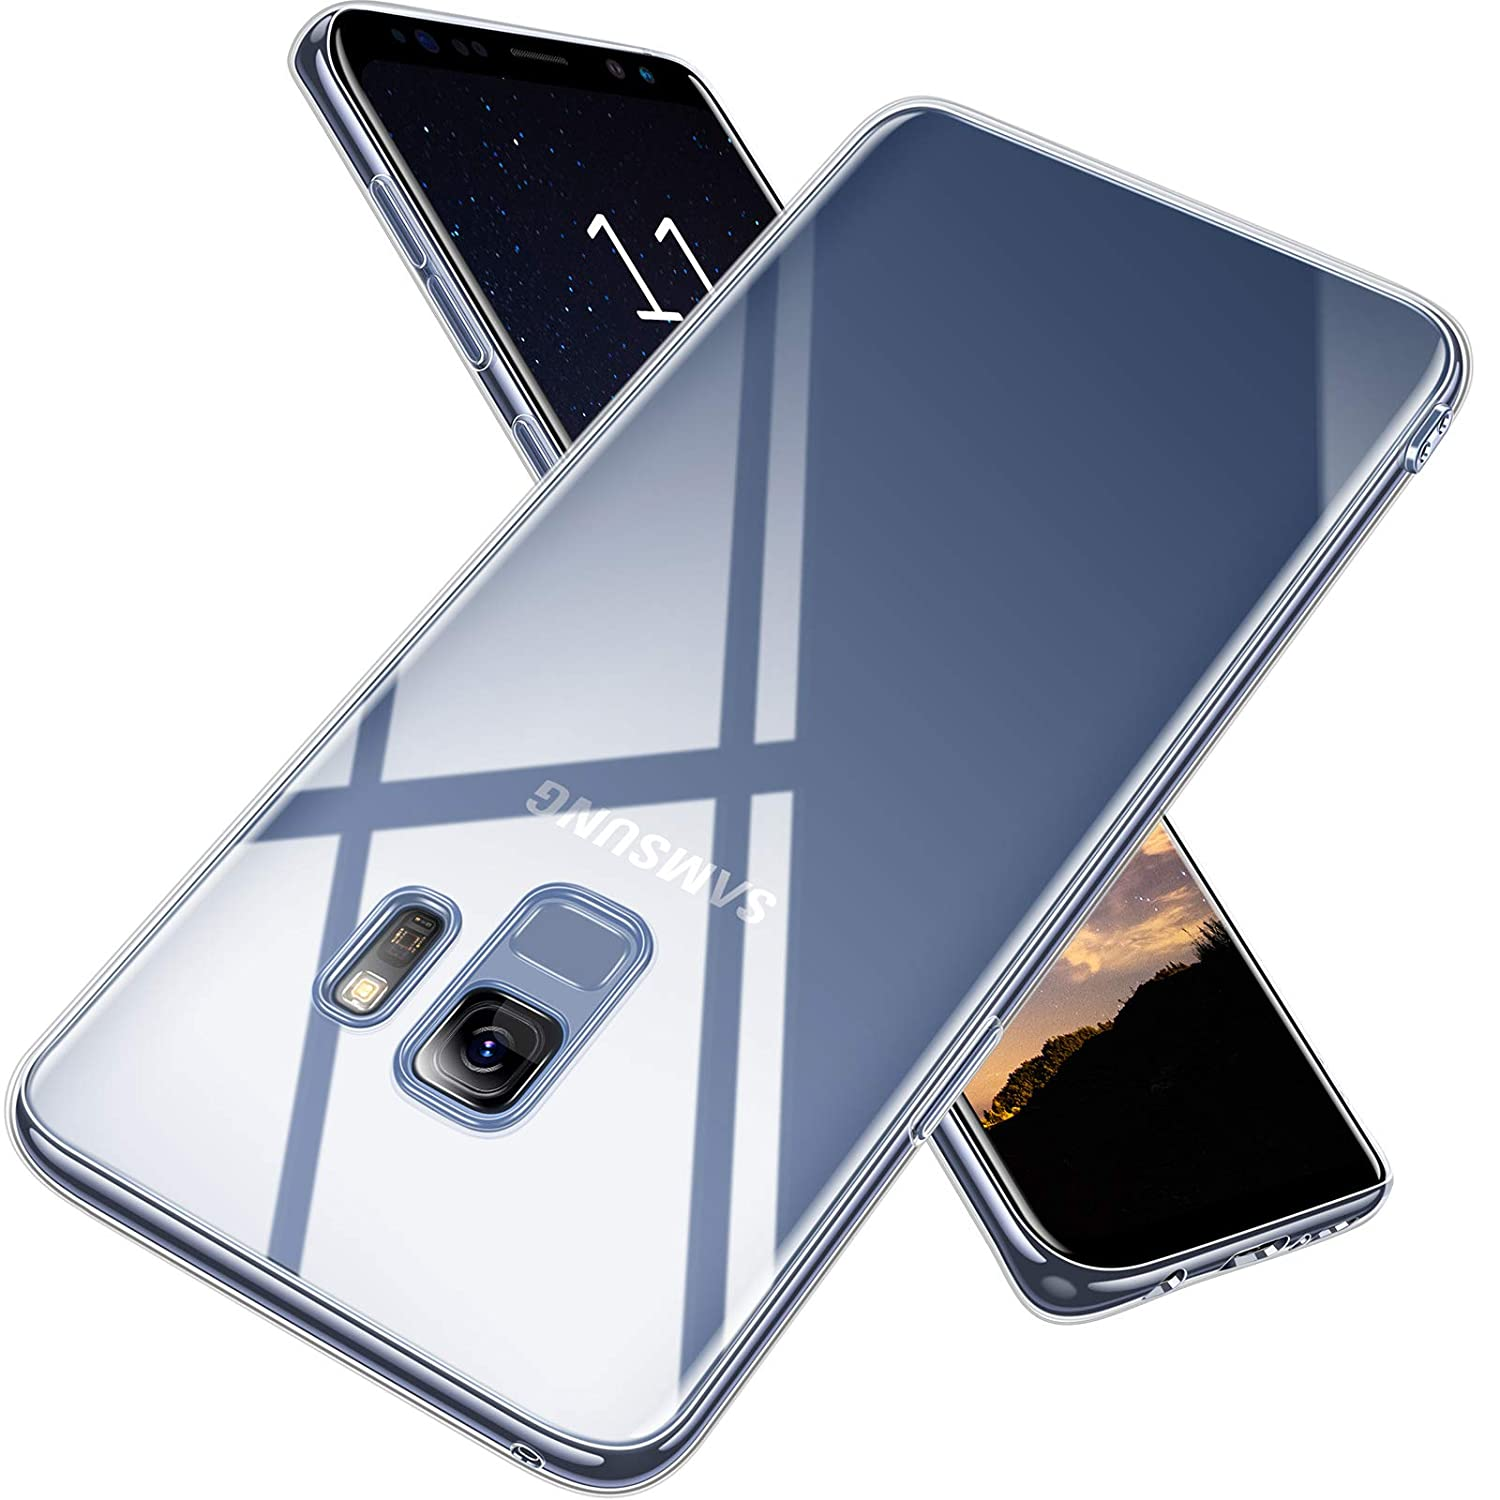 low priced 9b4a8 aff15 TORRAS Crystal Clear Galaxy S9 Case, Ultra Thin Slim Fit Soft TPU  Protective Transparent Cover Case Compatible with Samsung Galaxy S9 (5.8